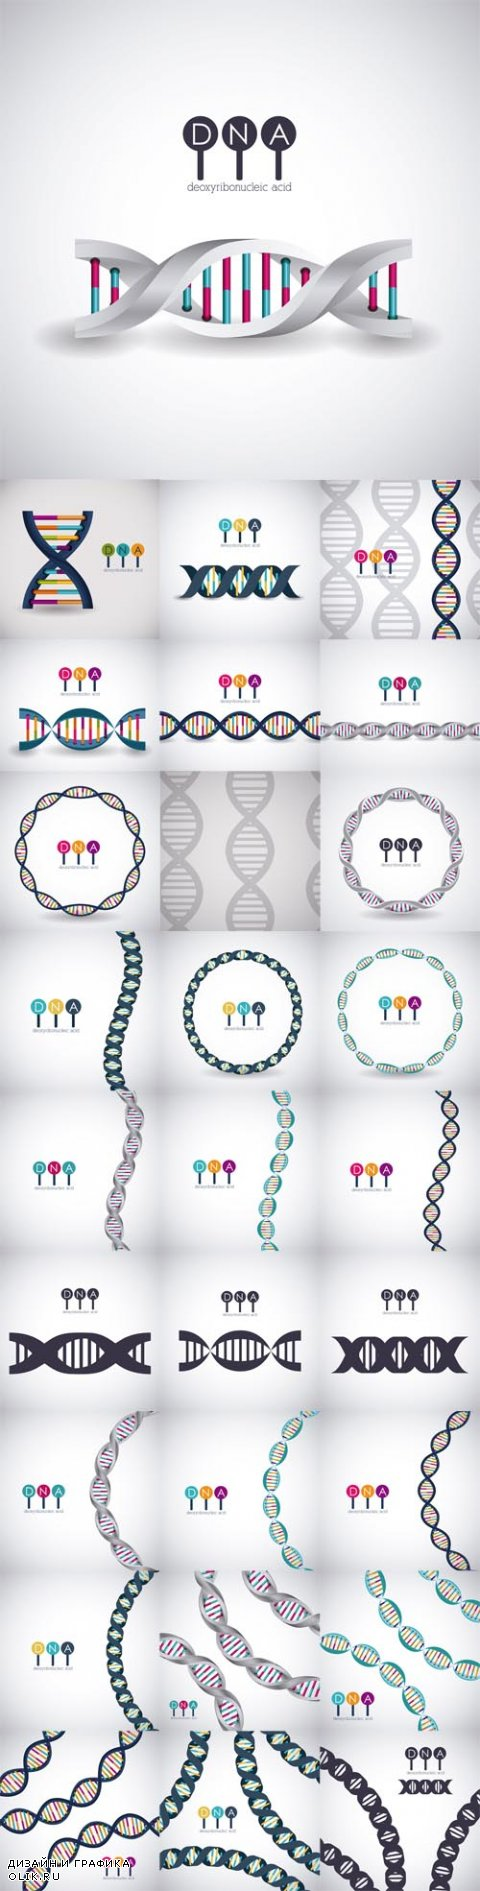 Vector Dna structure chromosome icon. Science molecule genetic and biology theme